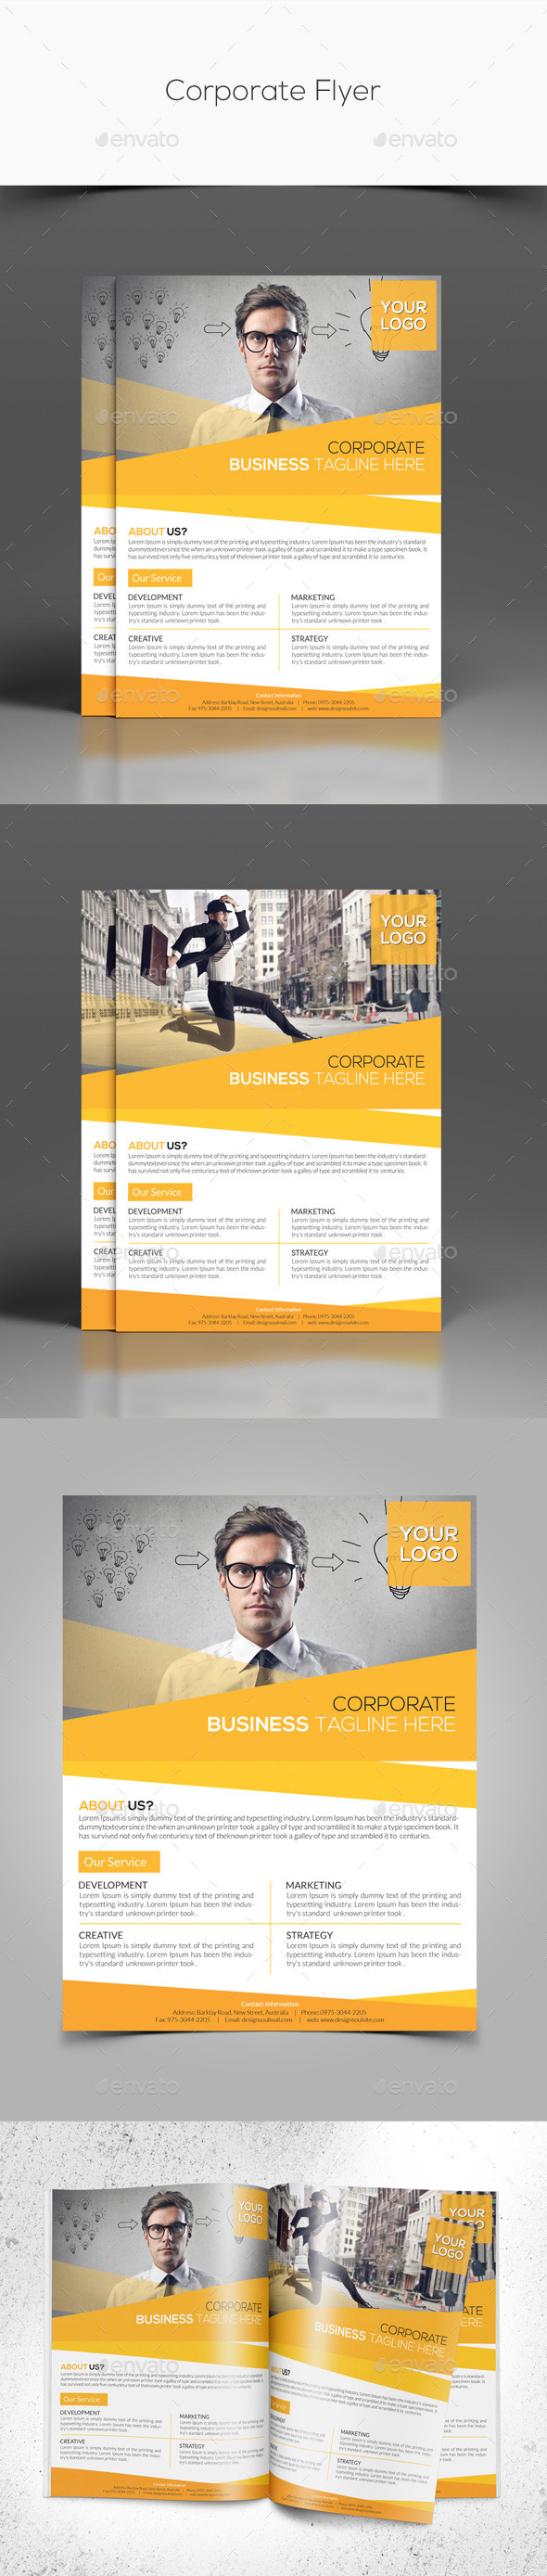 GraphicRiver Corporate Flyer 10353972